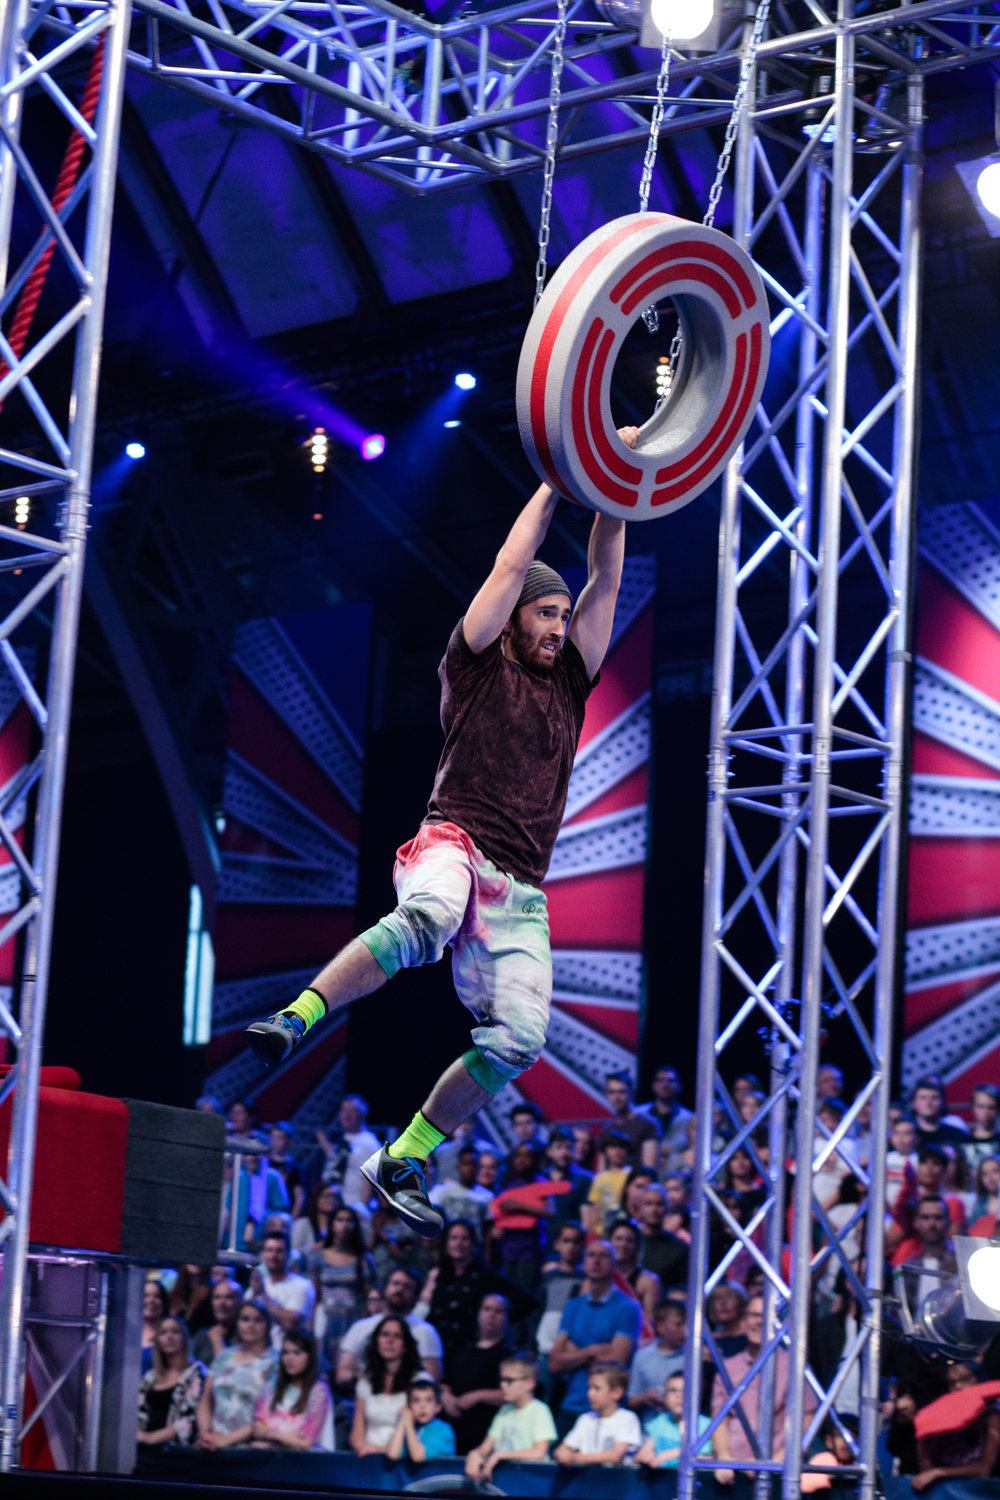 Jacob, swinging through a UK Ninja Warrior course.